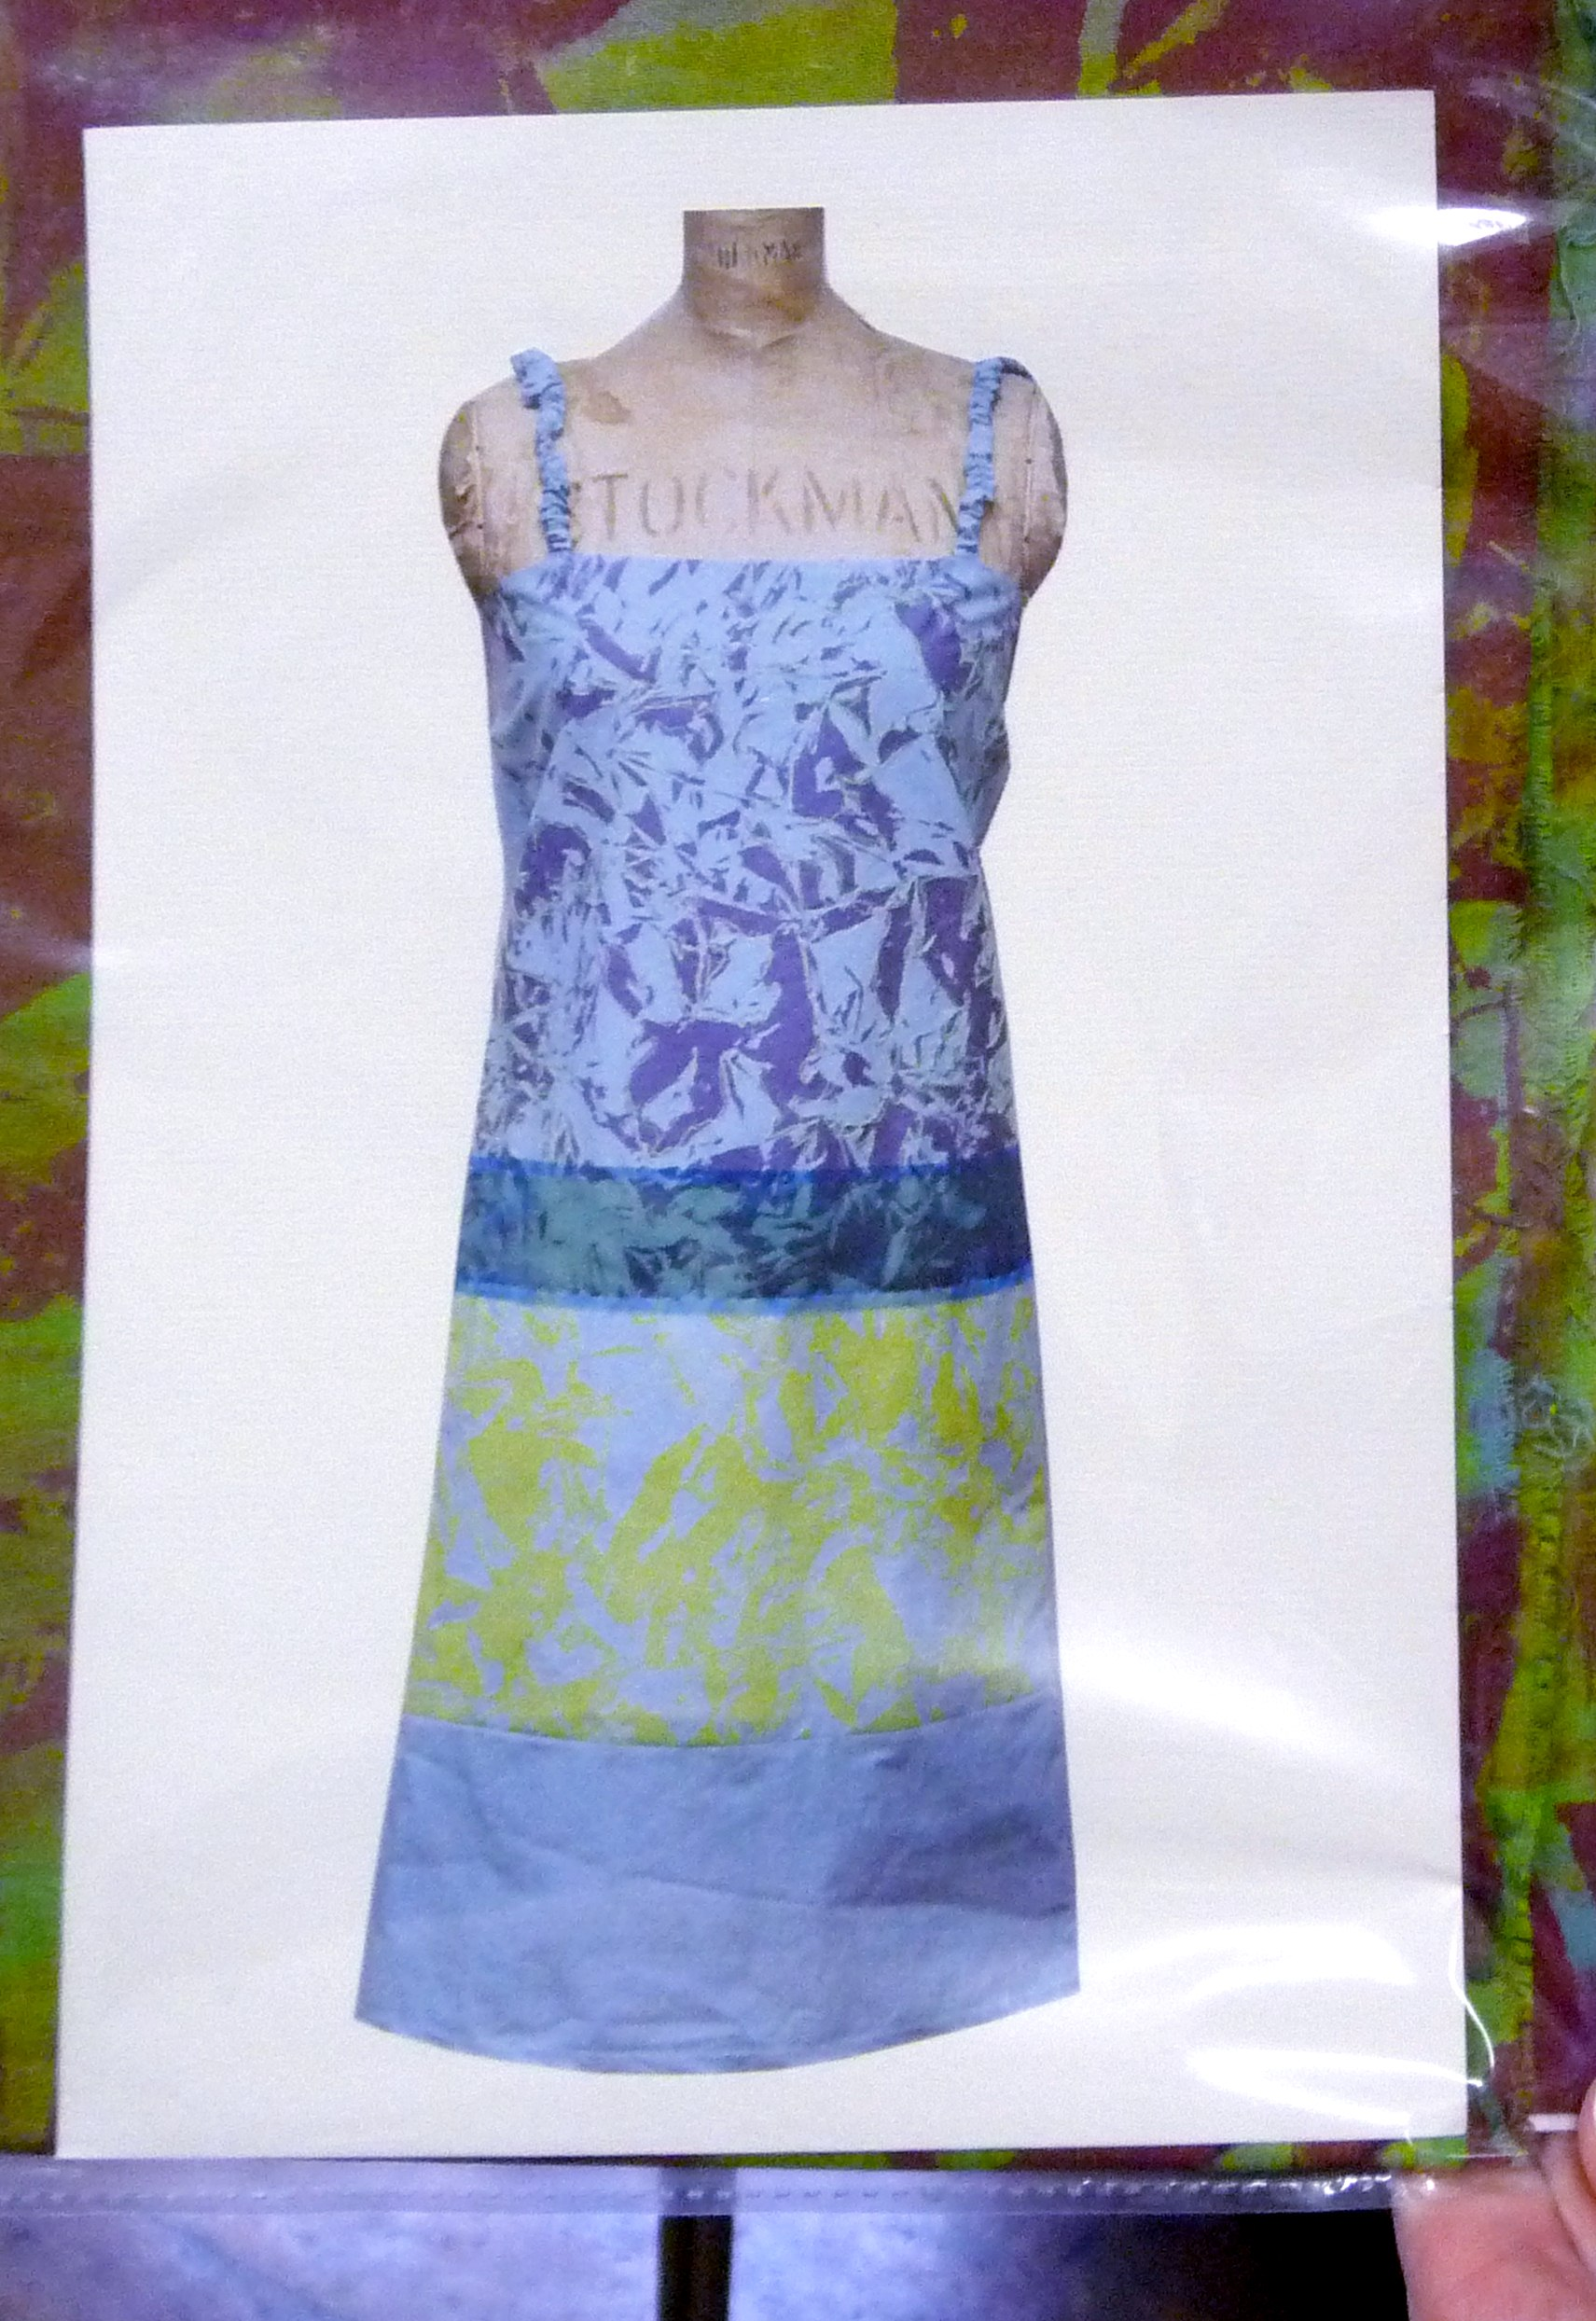 clothing made by Christine Toh